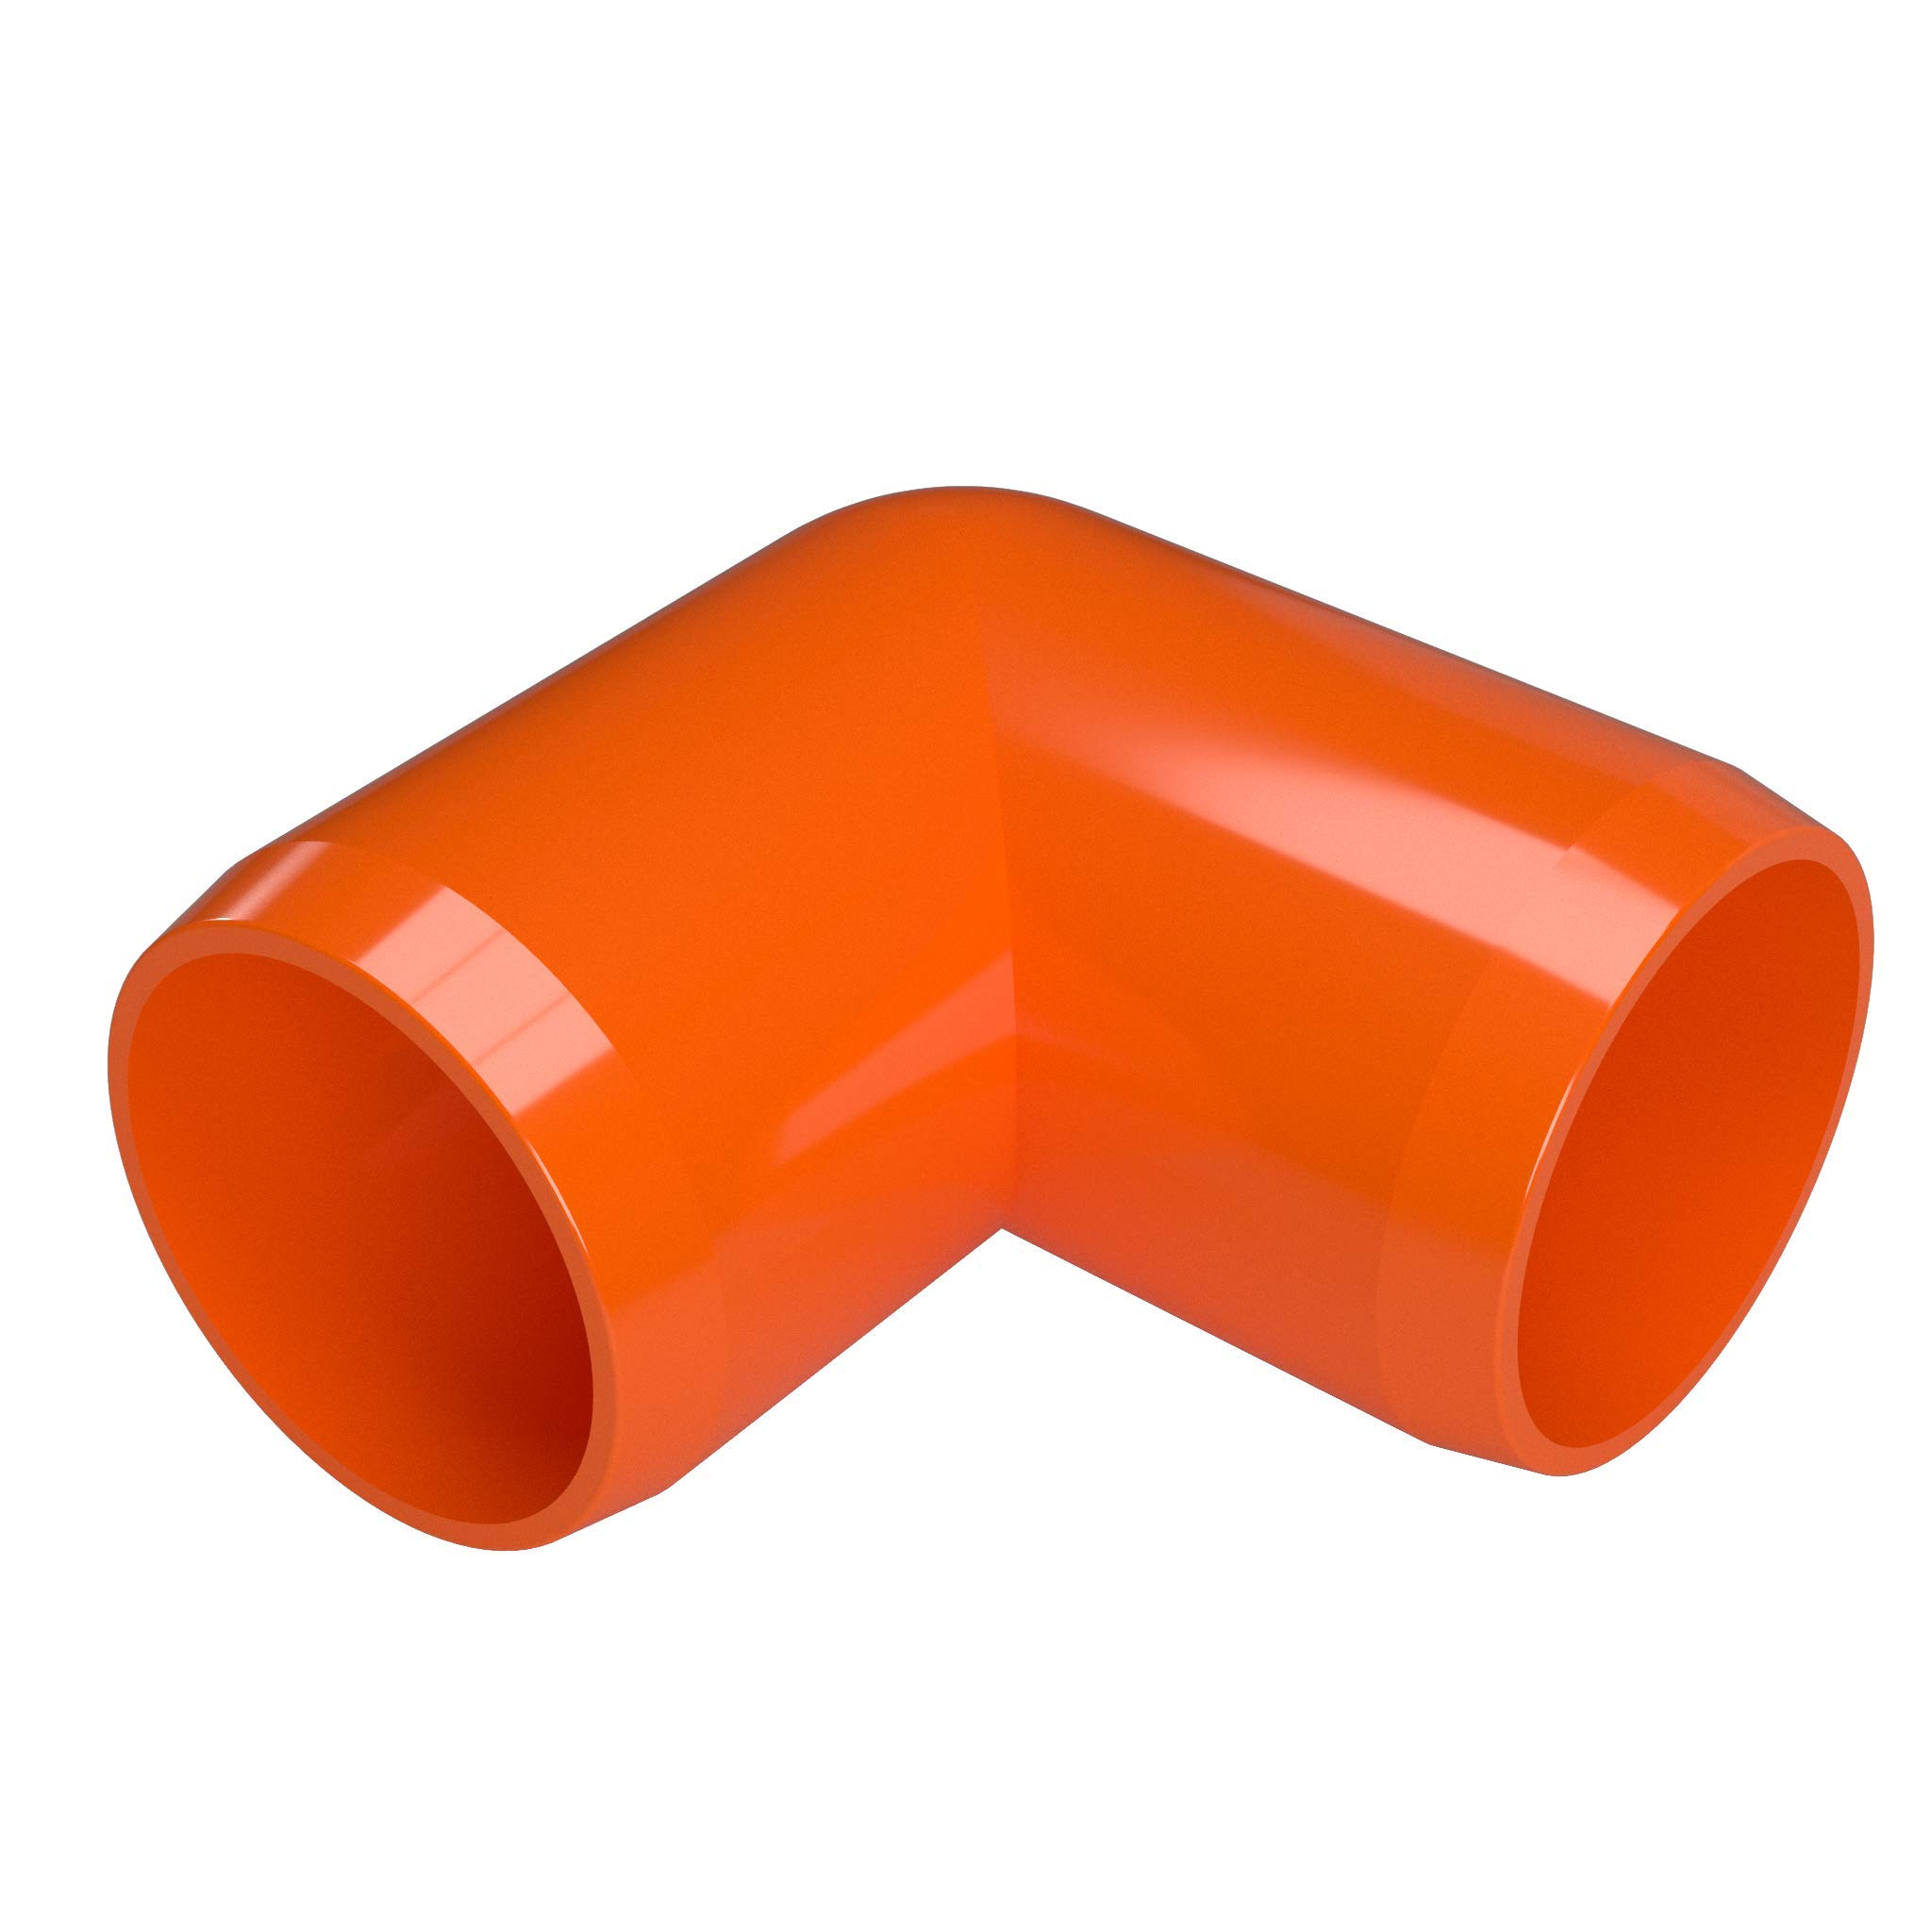 FORMUFIT F03490E-OR-8 Elbow PVC Fitting, Furniture Grade, 90 Degree, 3/4'' Size, Orange (Pack of 8)